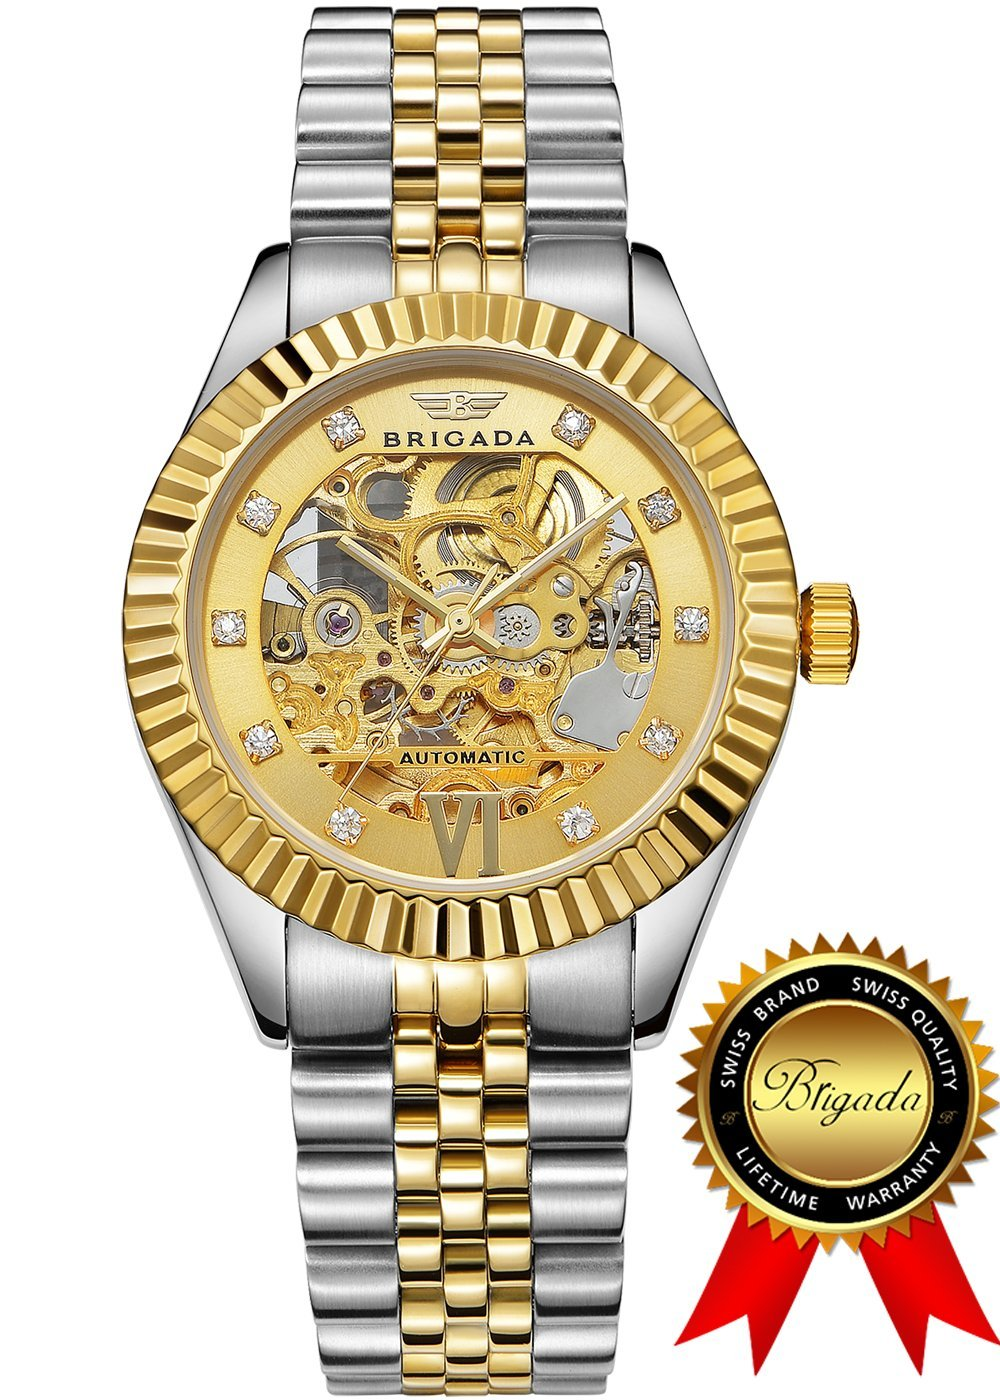 BRIGADA Swiss Watches Luxury Gold Automatic Watches for Men, Nice Mechanical Men's Watches, Great Gift for Families, Lover, Friends or Yourself (38 mm, not fit for big wrist)